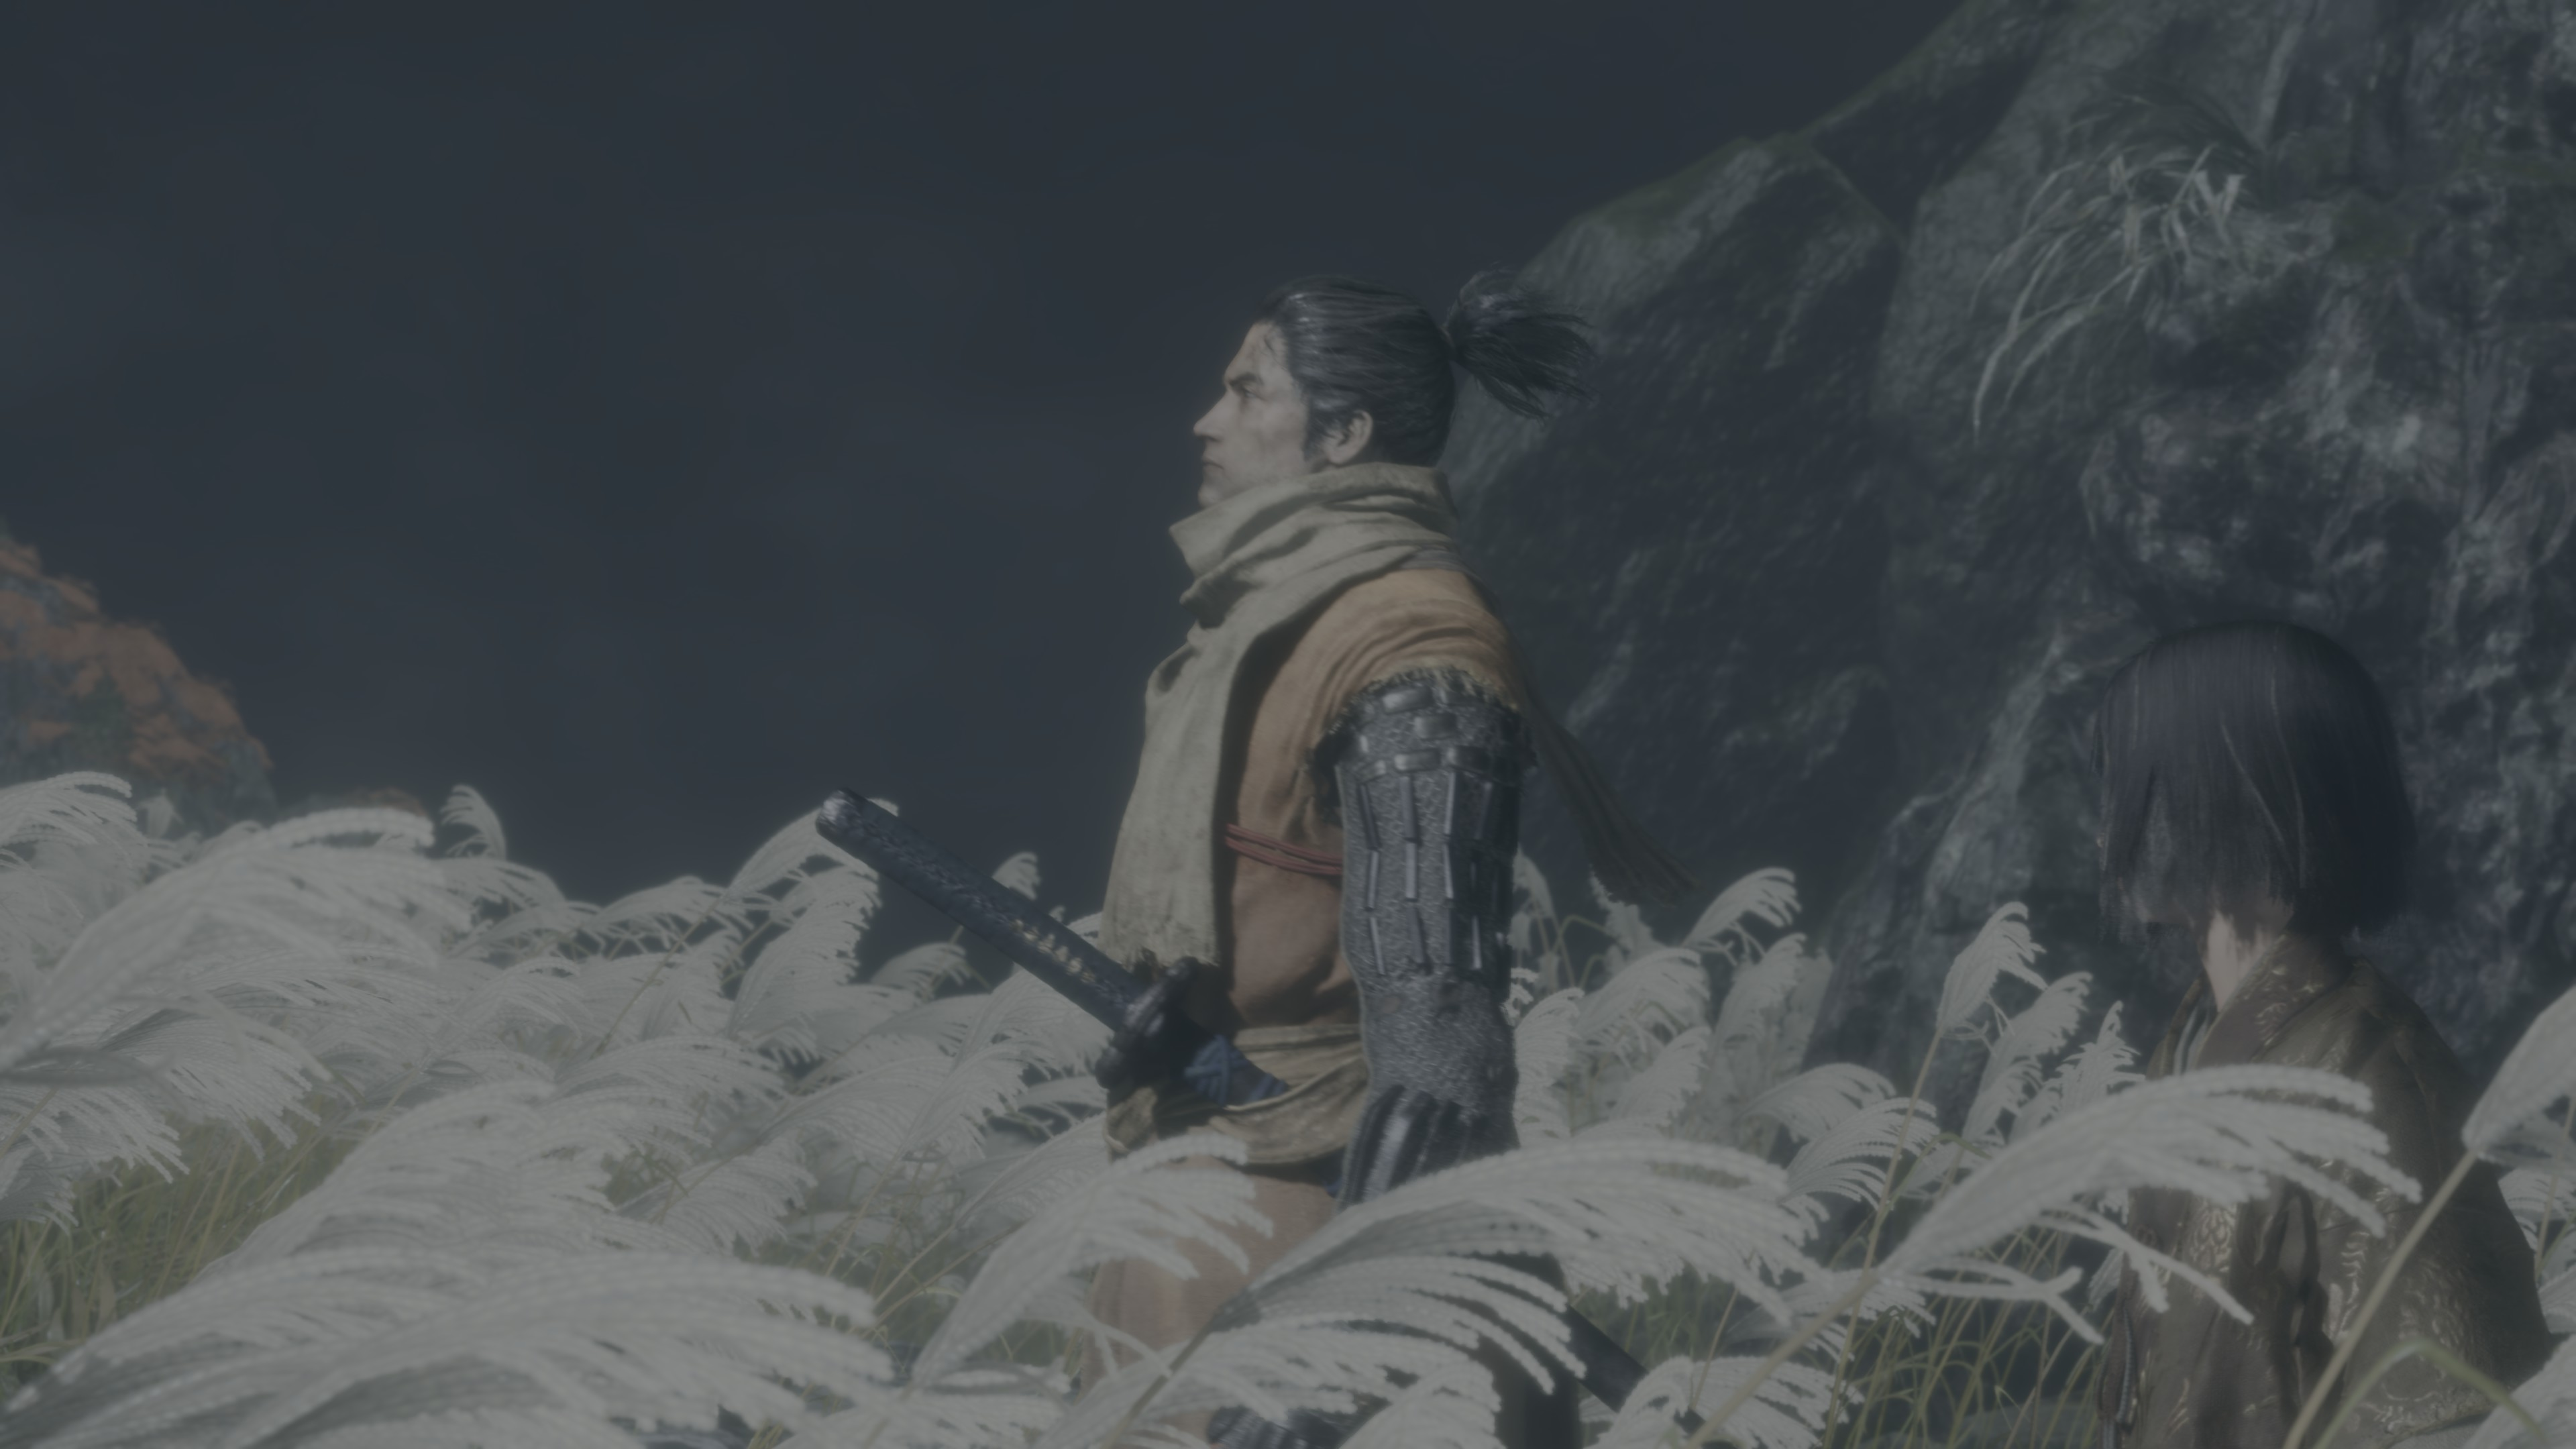 Sekiro: Shadows Die Twice [PC PS4 XONE] 37E678C20FC7BE93B118252C66BD0C1999F0646A